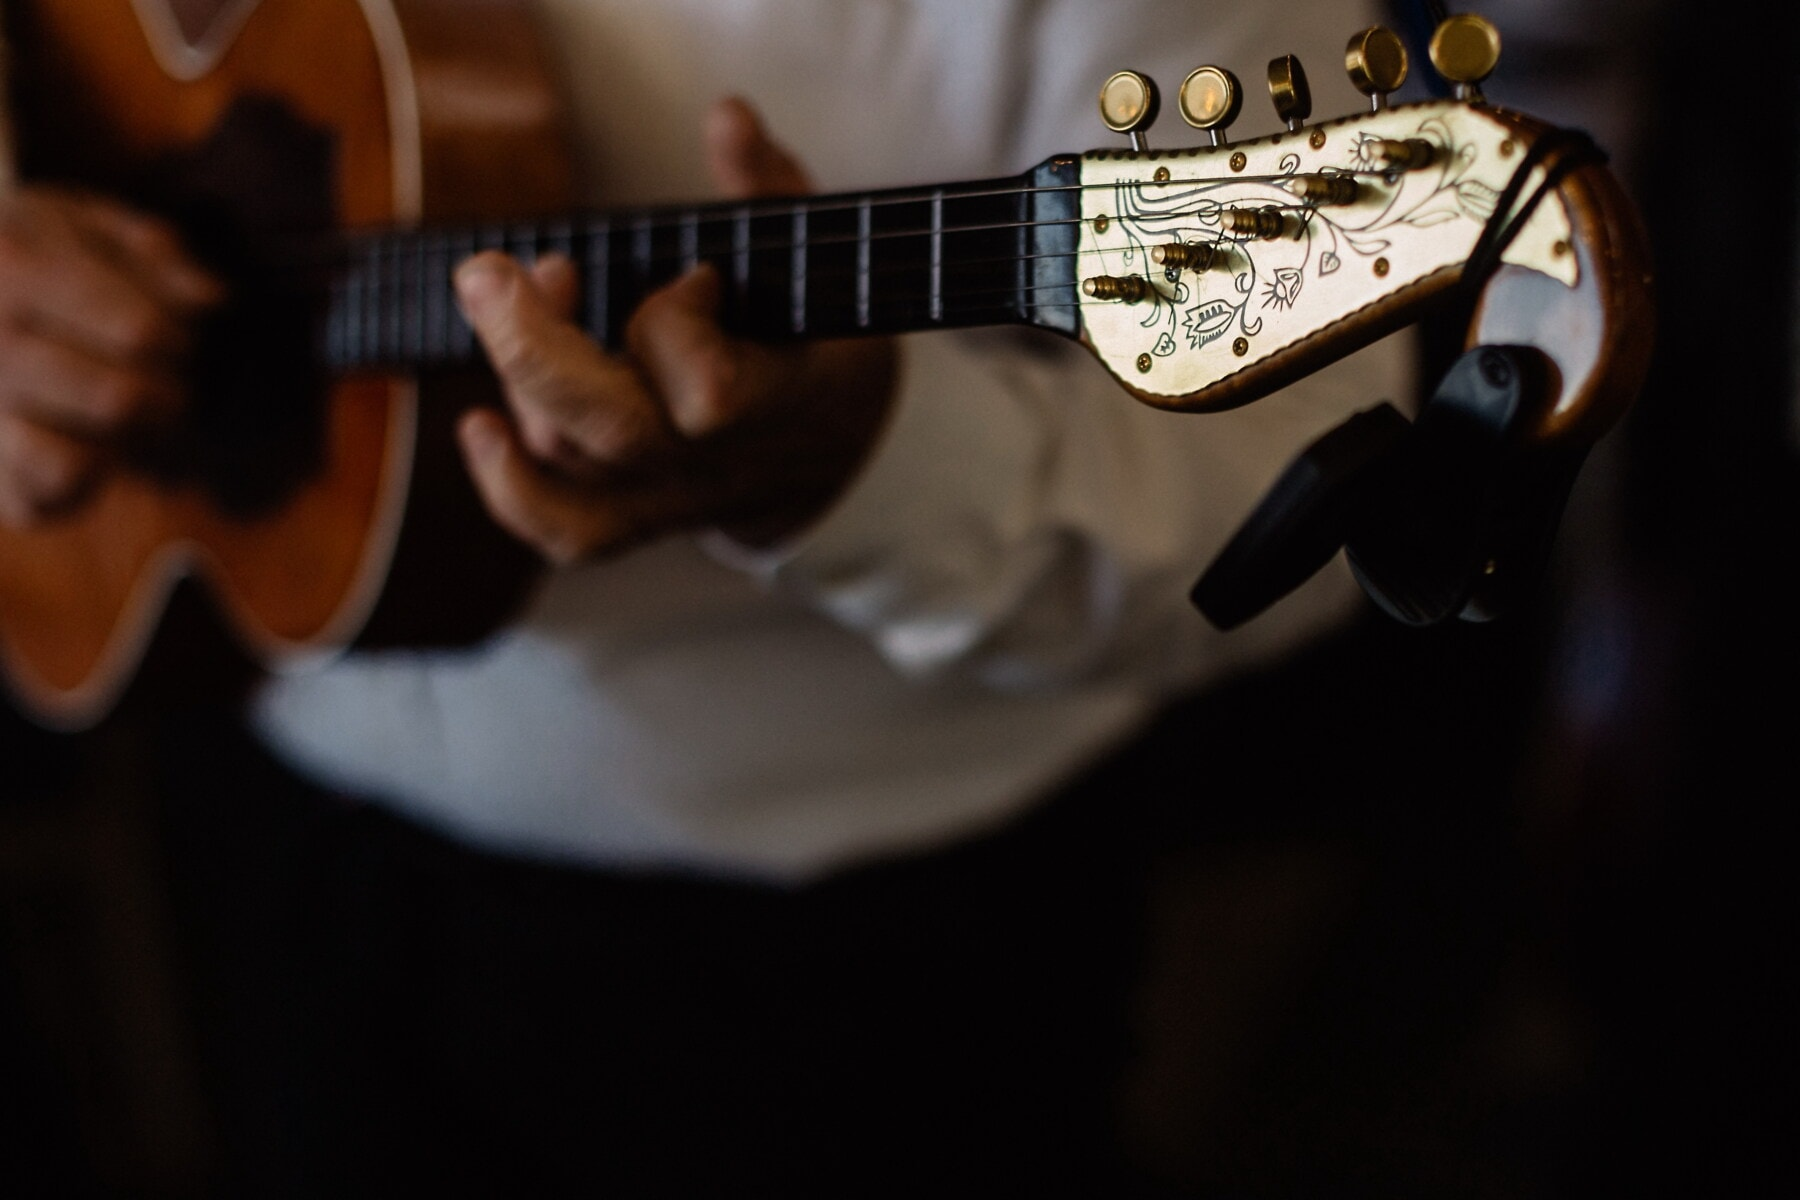 acoustic, guitar, guitarist, gypsy, golden shine, vintage, musical, rock, musician, sound